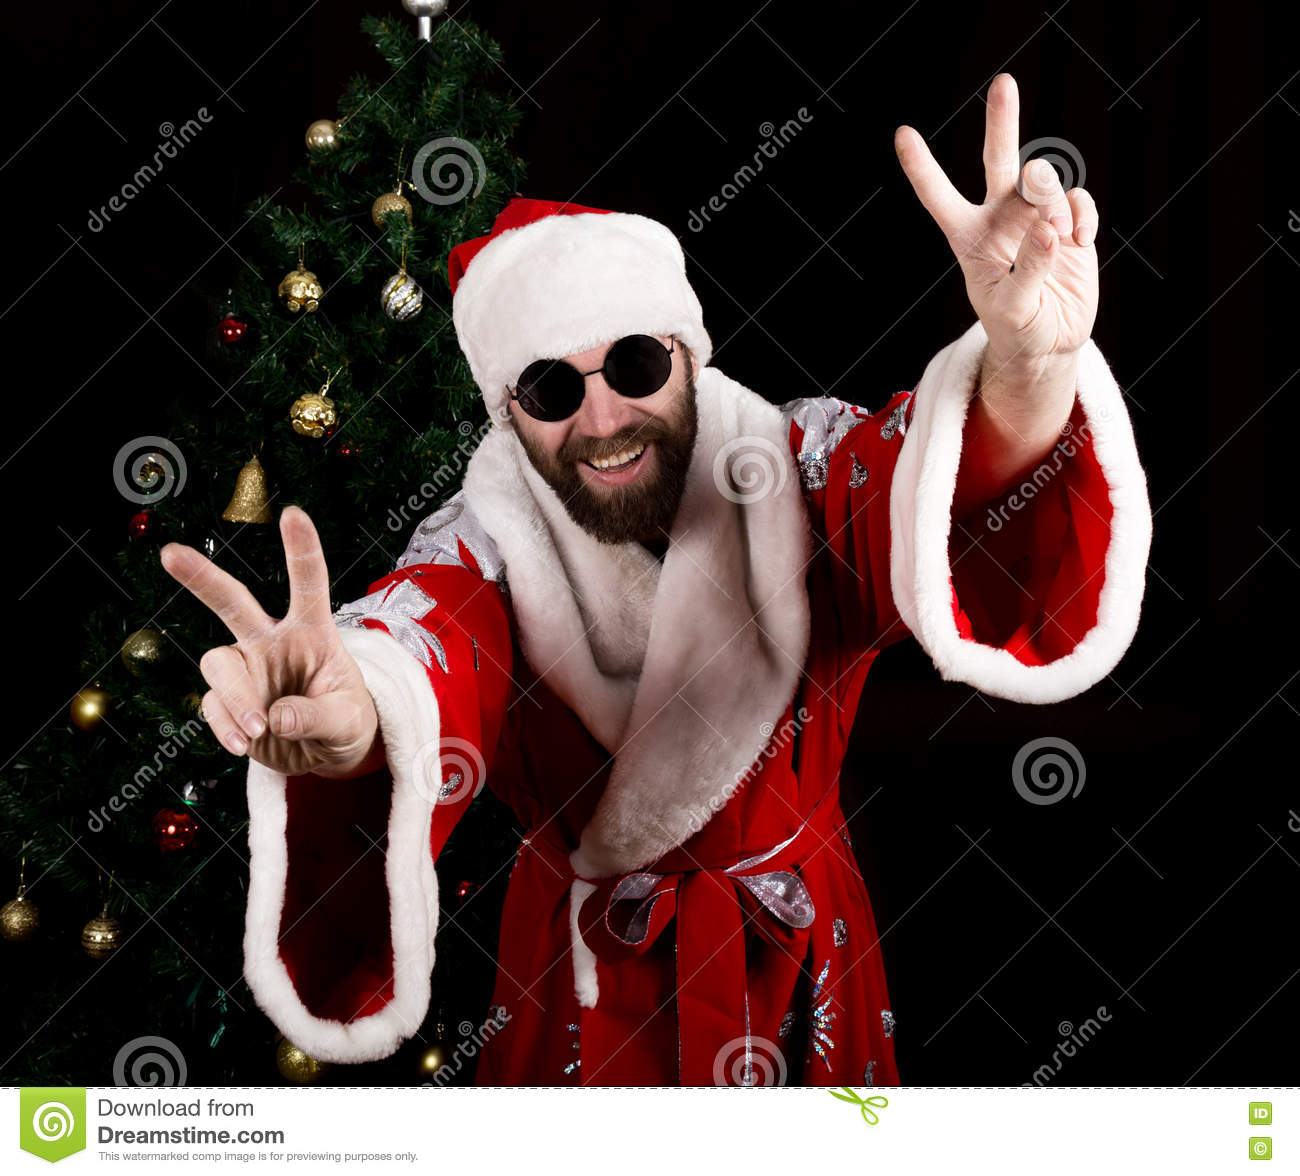 Bad brutal Santa Claus smiles and showing finger sign on the background of Christmas tree